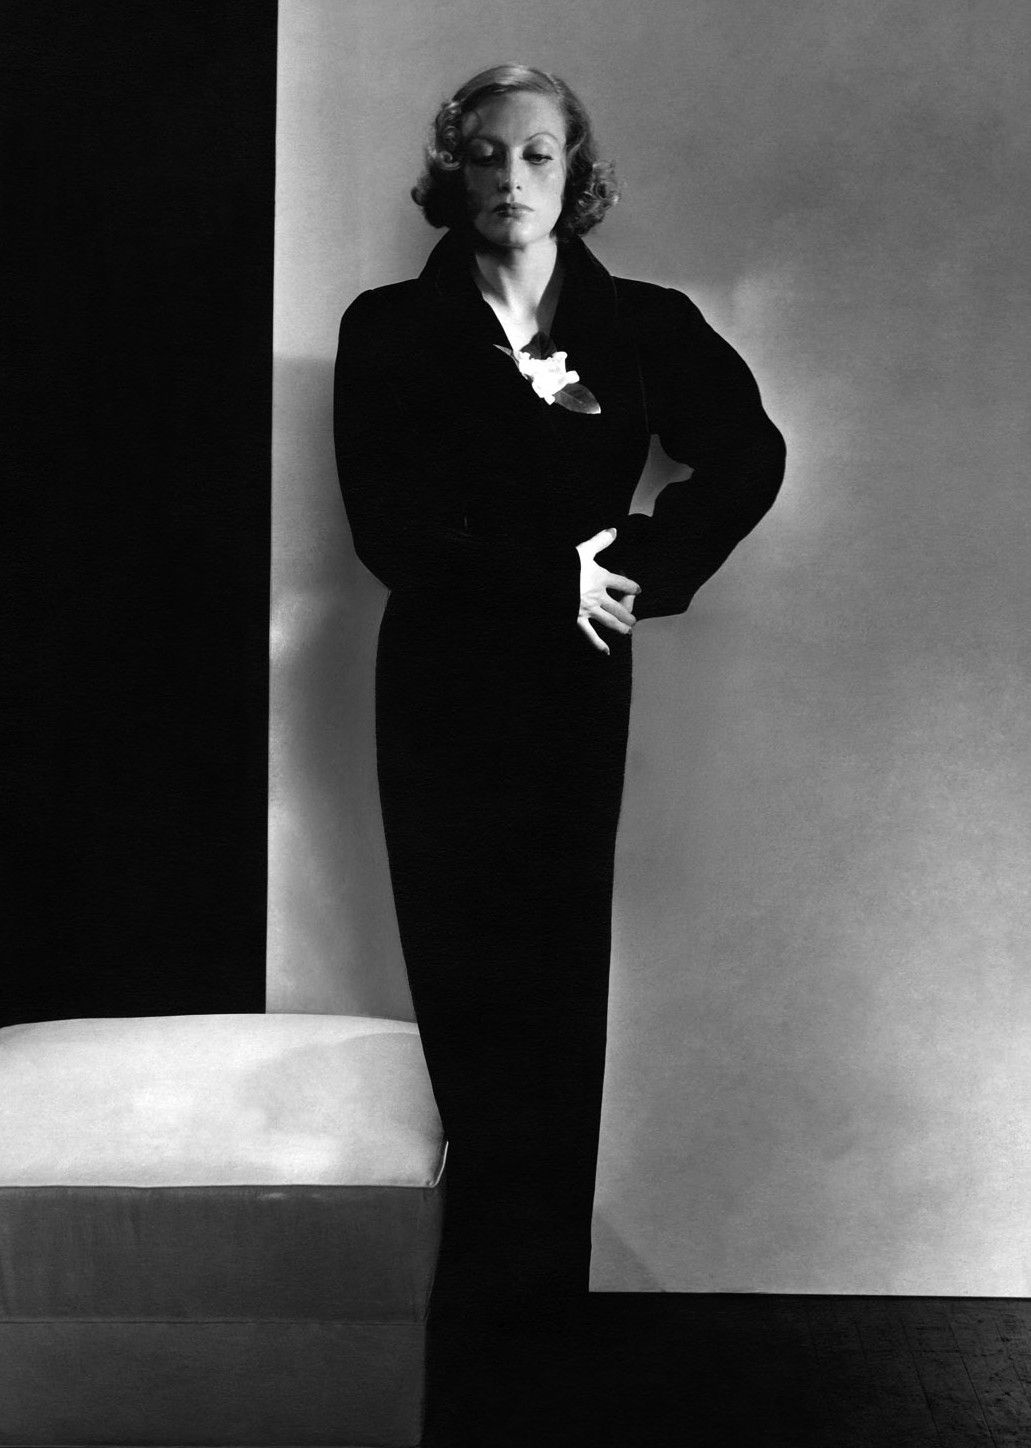 Joan Crawford wearing a dress by Elsa Schiaparelli in a 1932 photo by Edward Steichen for Vogue